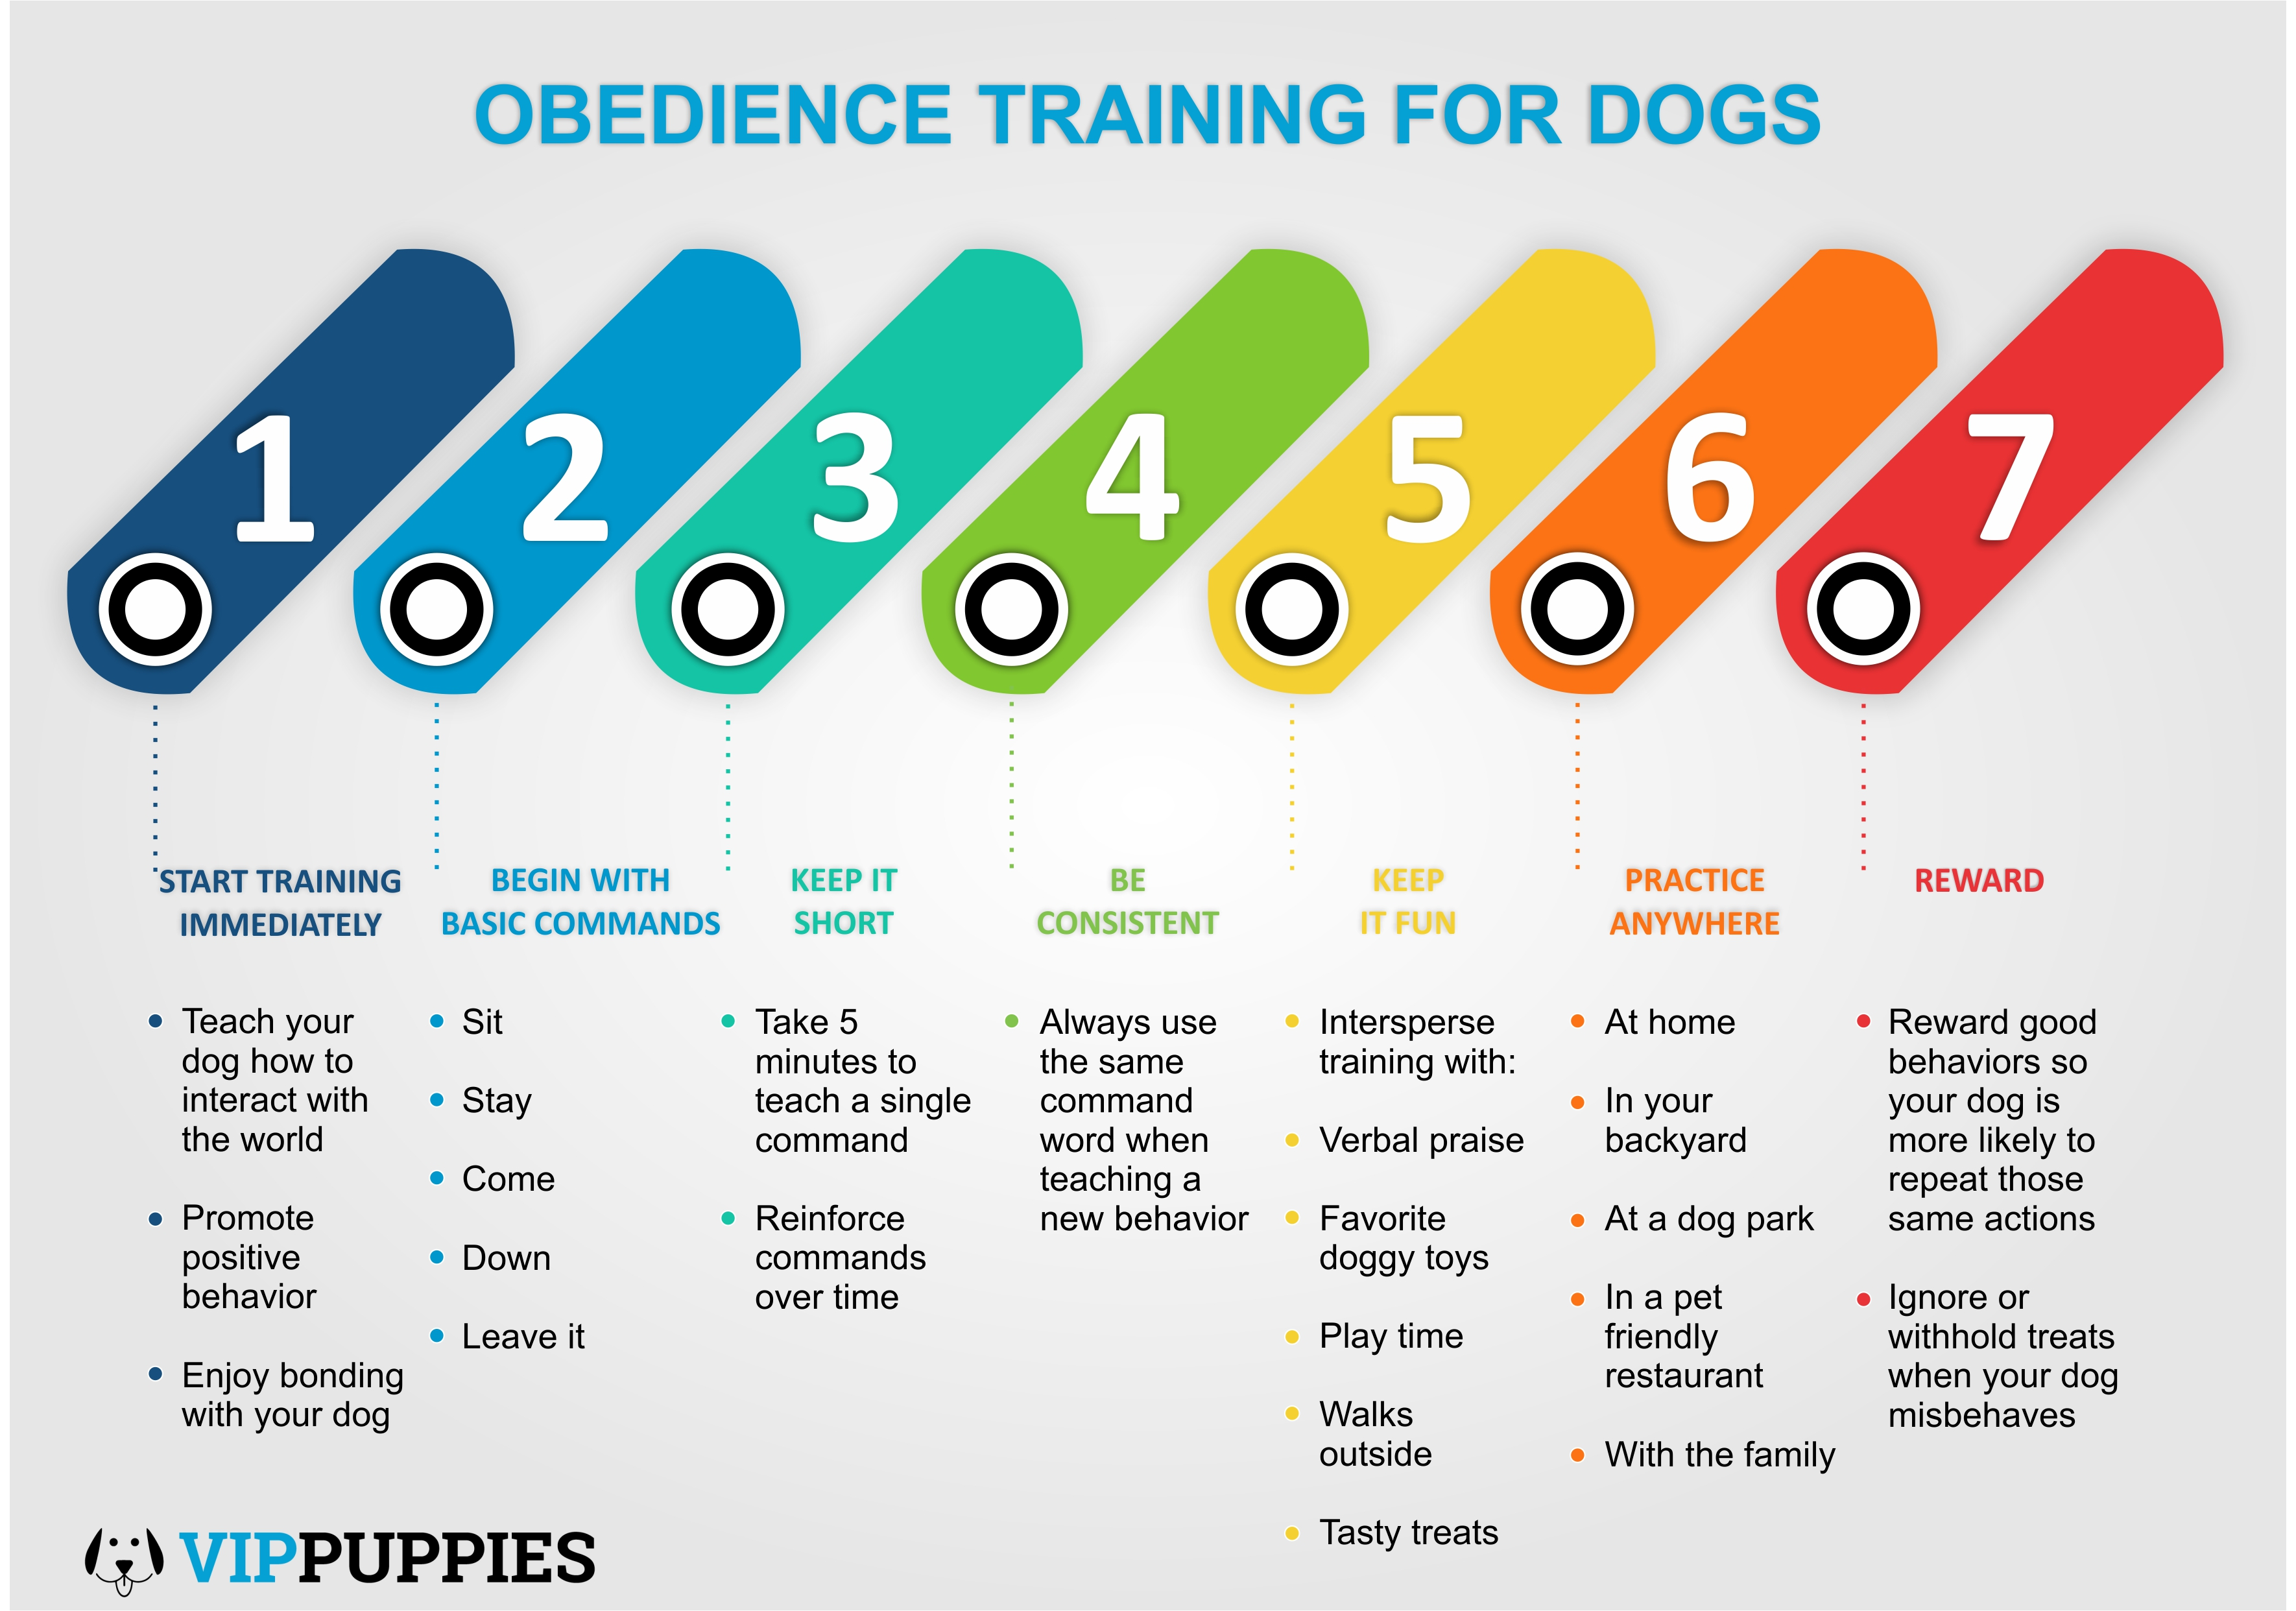 The 7 keys to obedience training for dogs.